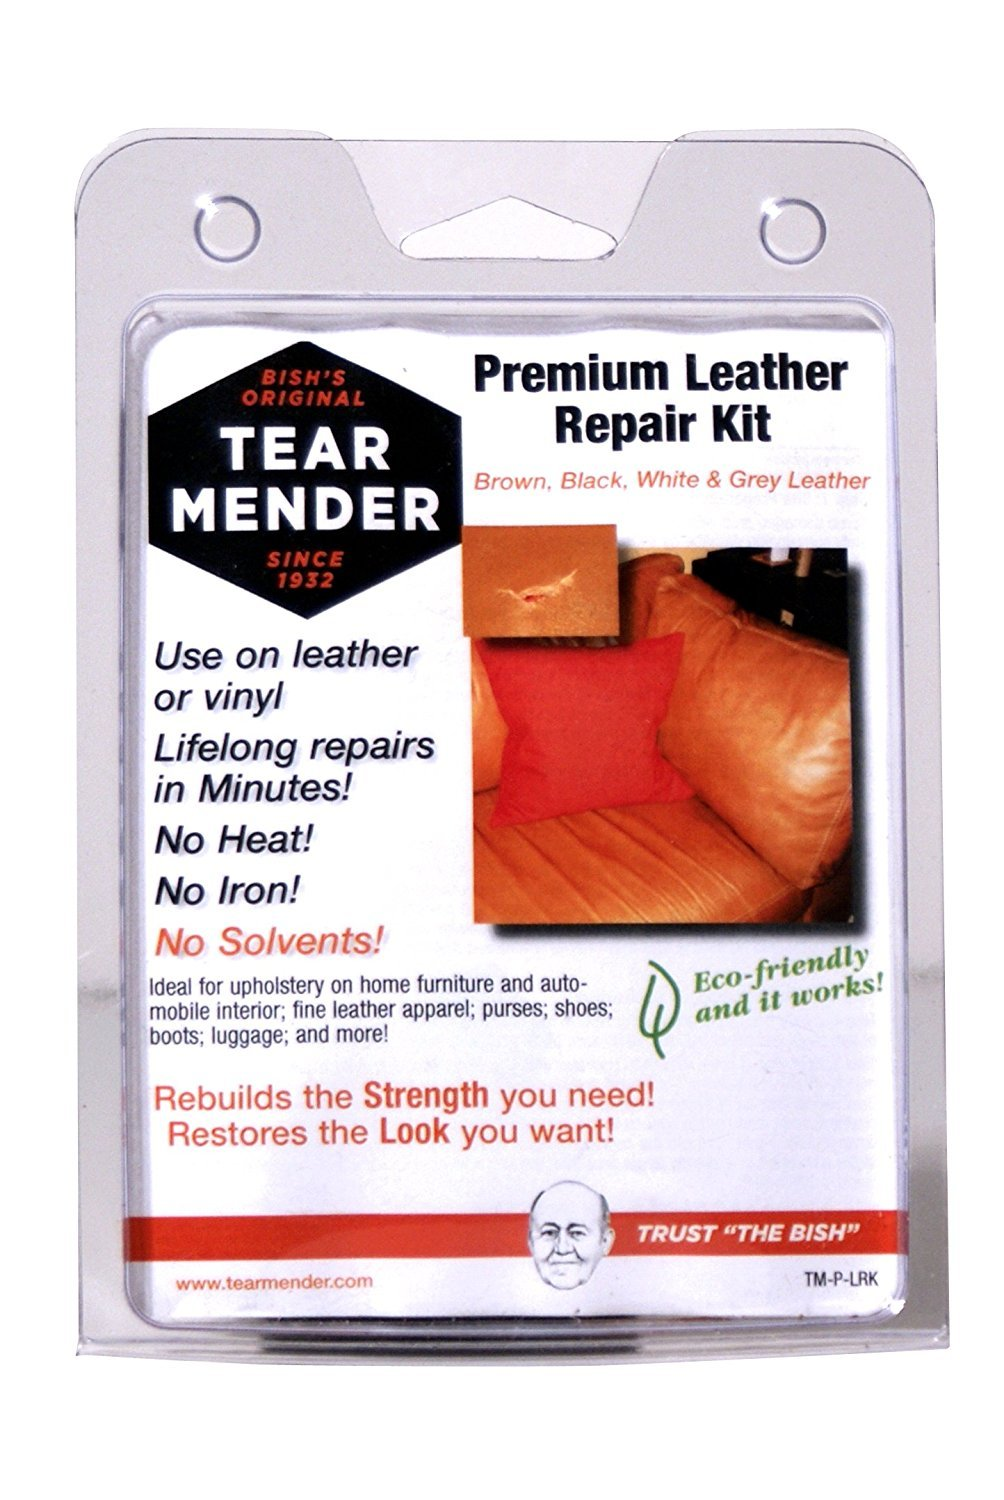 Tear Mender Leather Repair Kit with Patches and Color Refinish Compound, 2 oz. Bottle, 6 Pack,  TM-P-LRK-C6 by Tear Mender